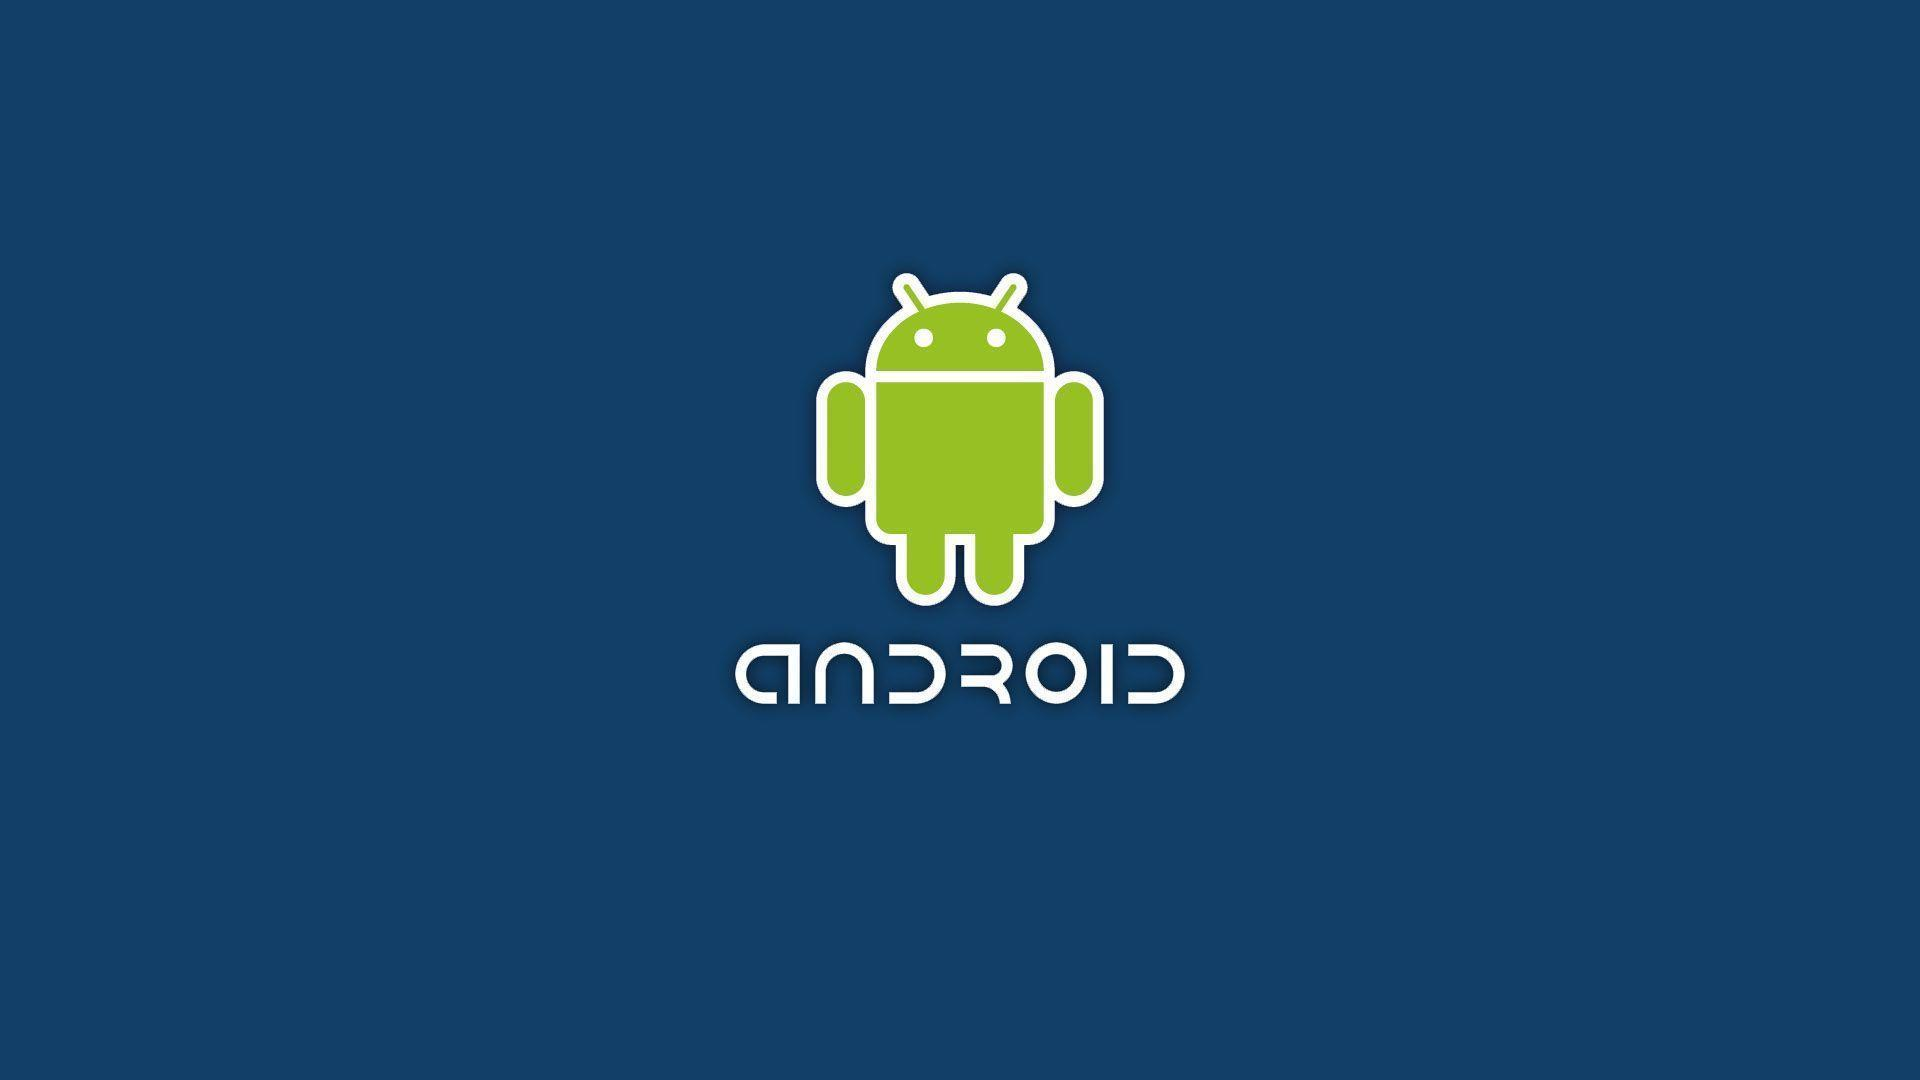 Android logo wallpapers wallpaper cave - Anime wallpaper hd for android phones ...